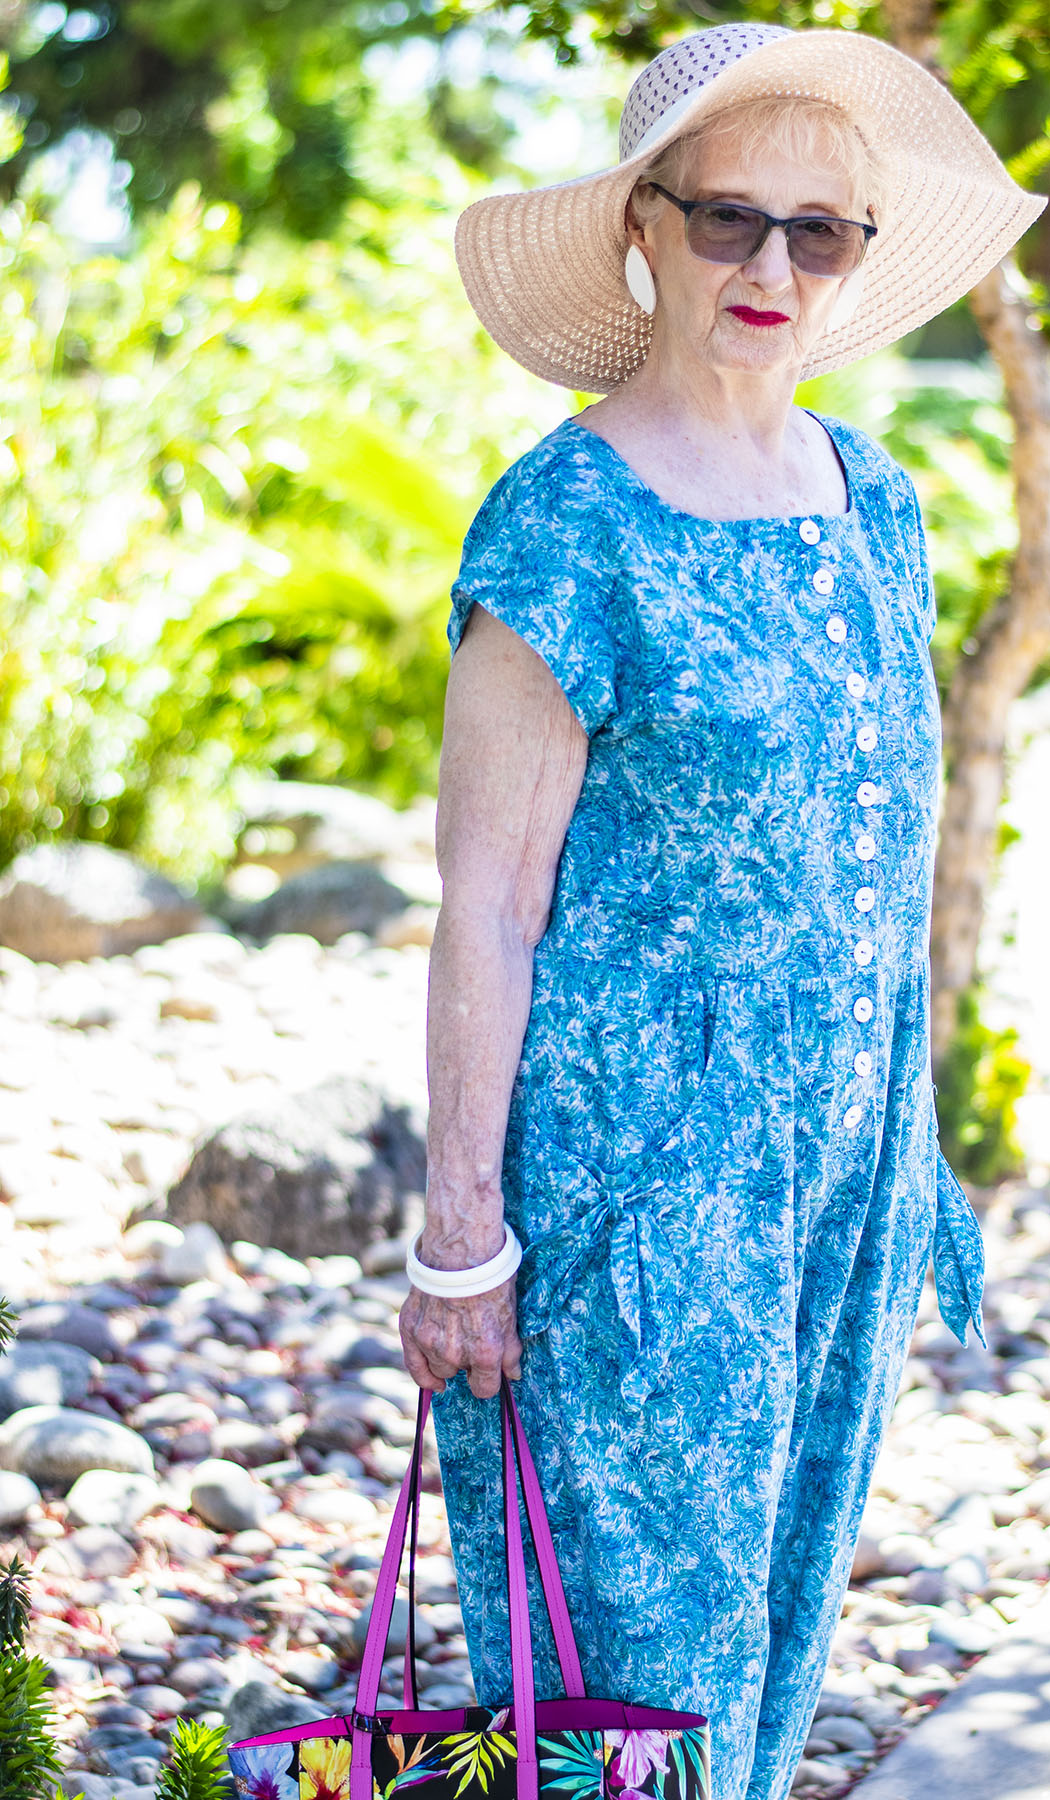 Colorful Resort Wear for Women over 50